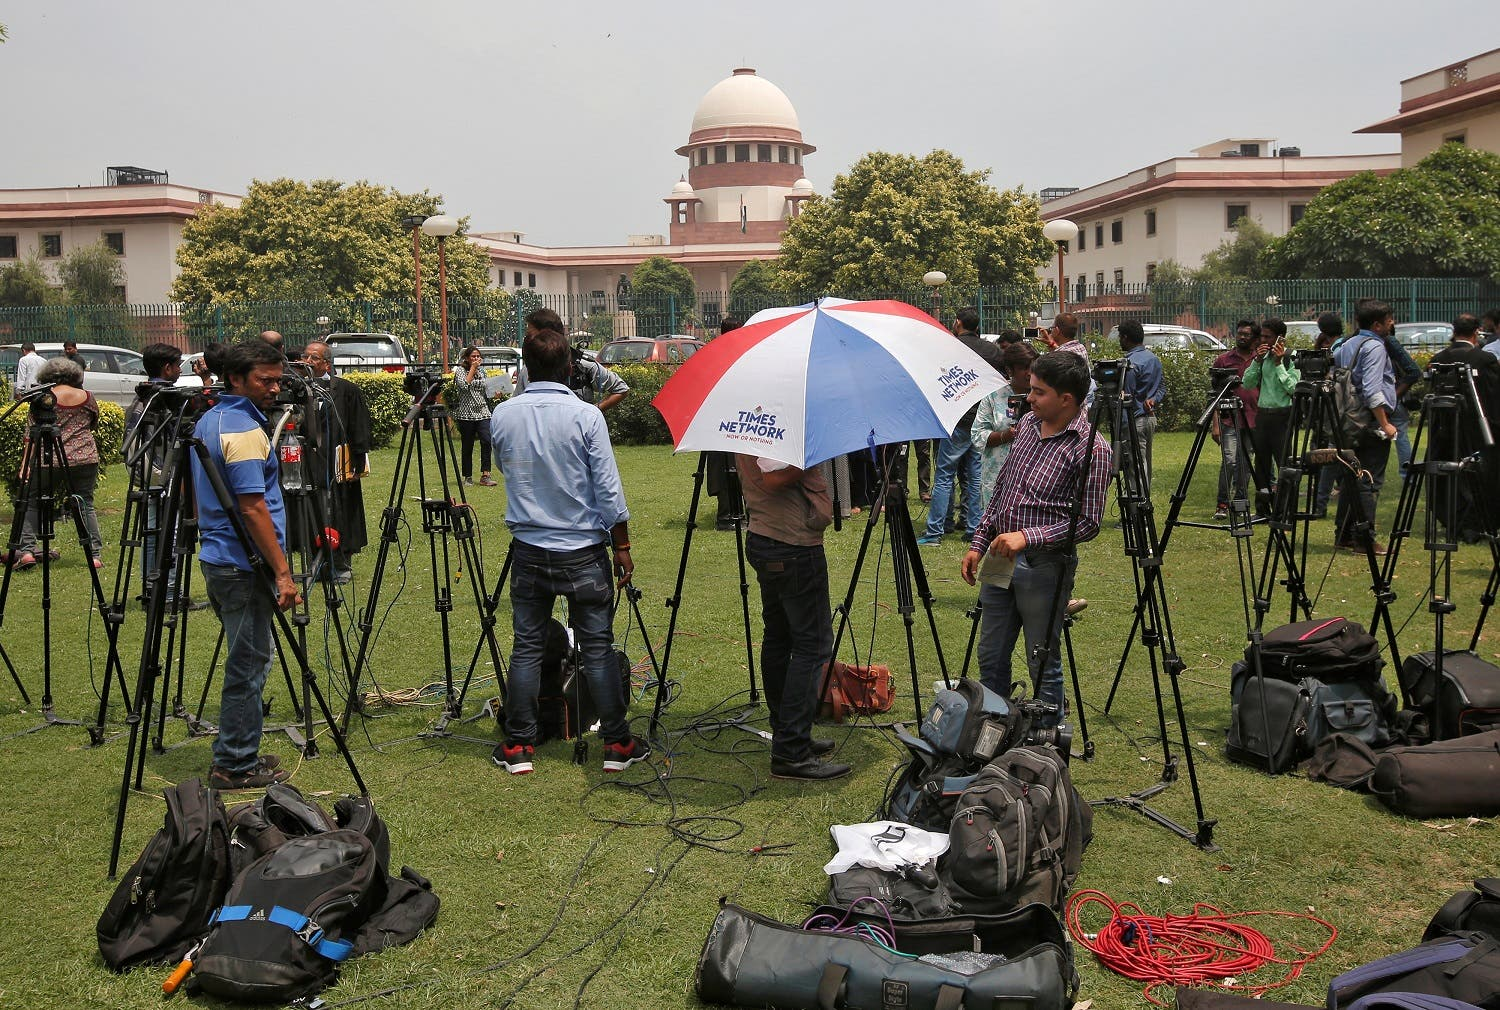 Television journalists outside the premises of the Supreme Court in New Delhi on August 22, 2017. (Reuters)